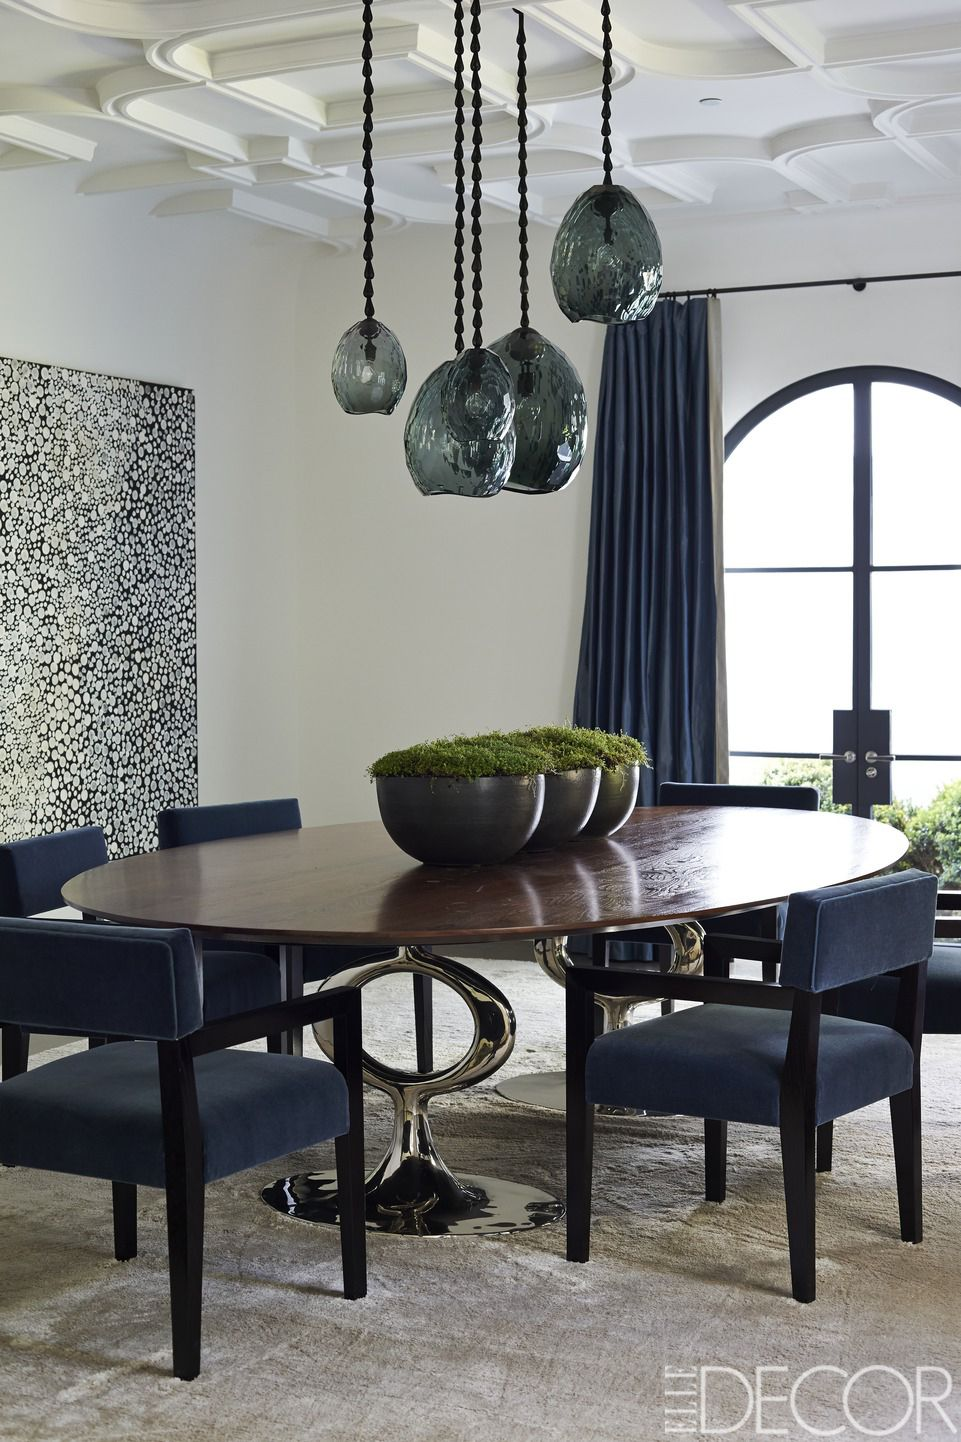 25 Modern Dining Room Decorating Ideas